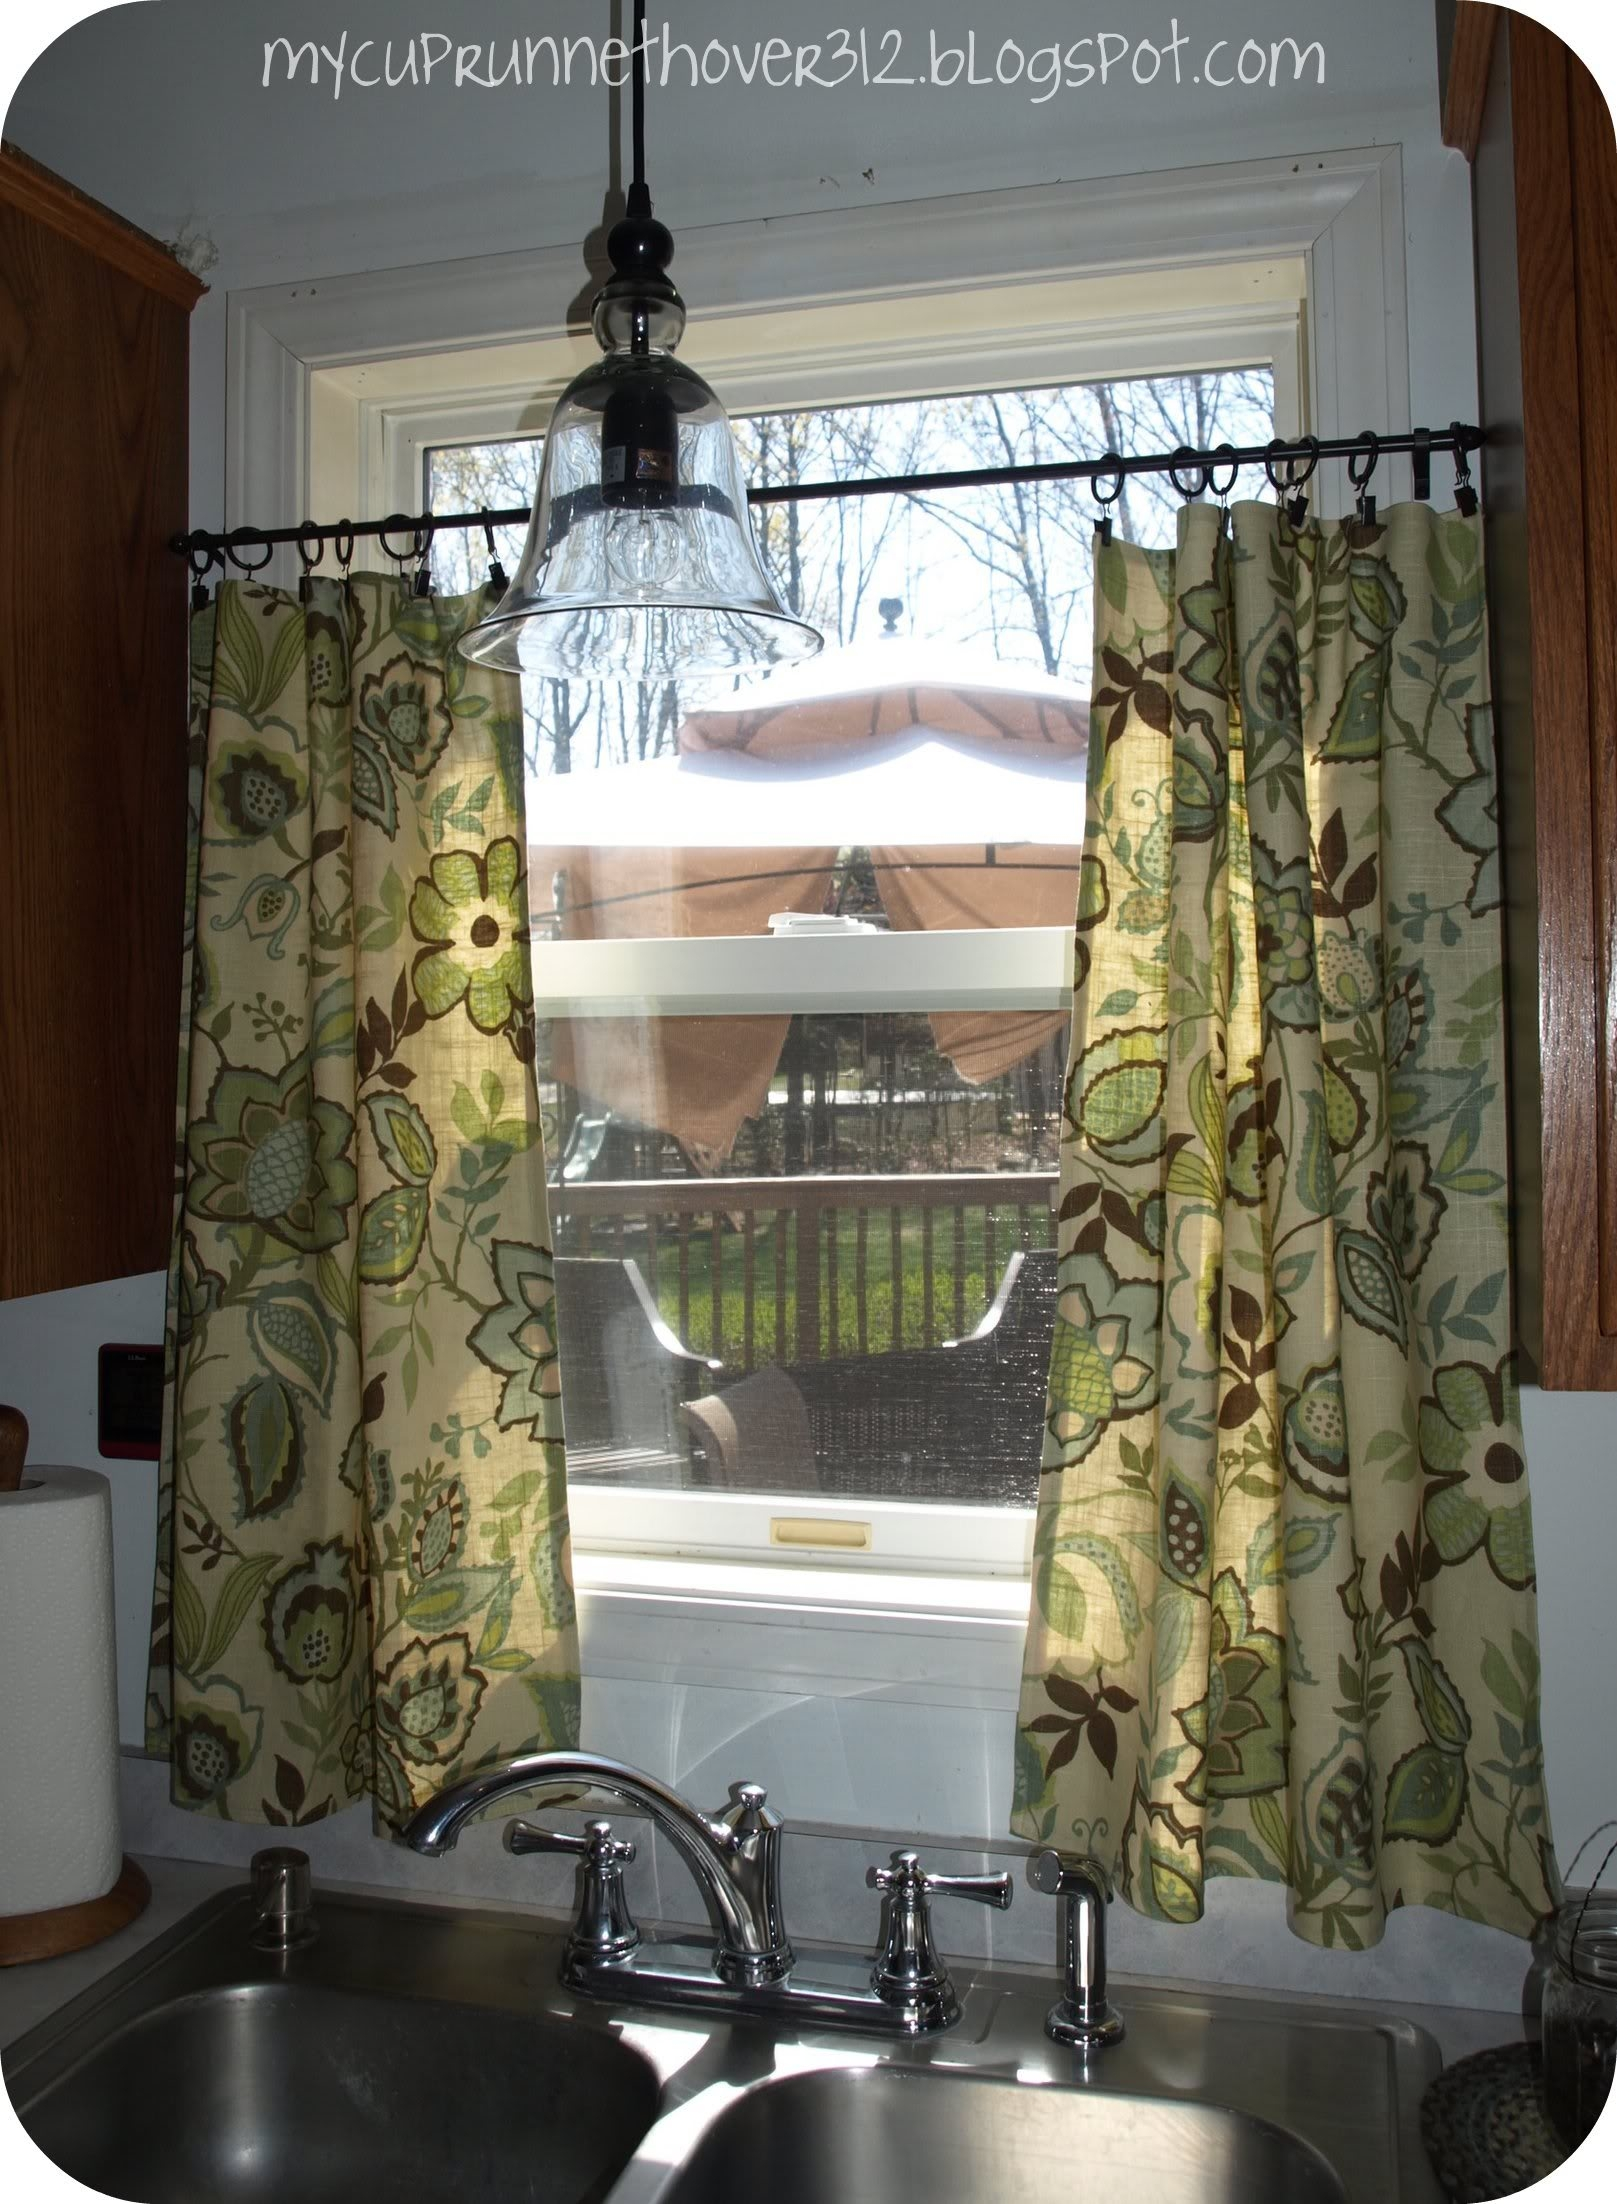 Kitchen Curtains Finally Mycuprunnethoverblog Pertaining To Kitchen Curtains And Blinds (Image 8 of 15)